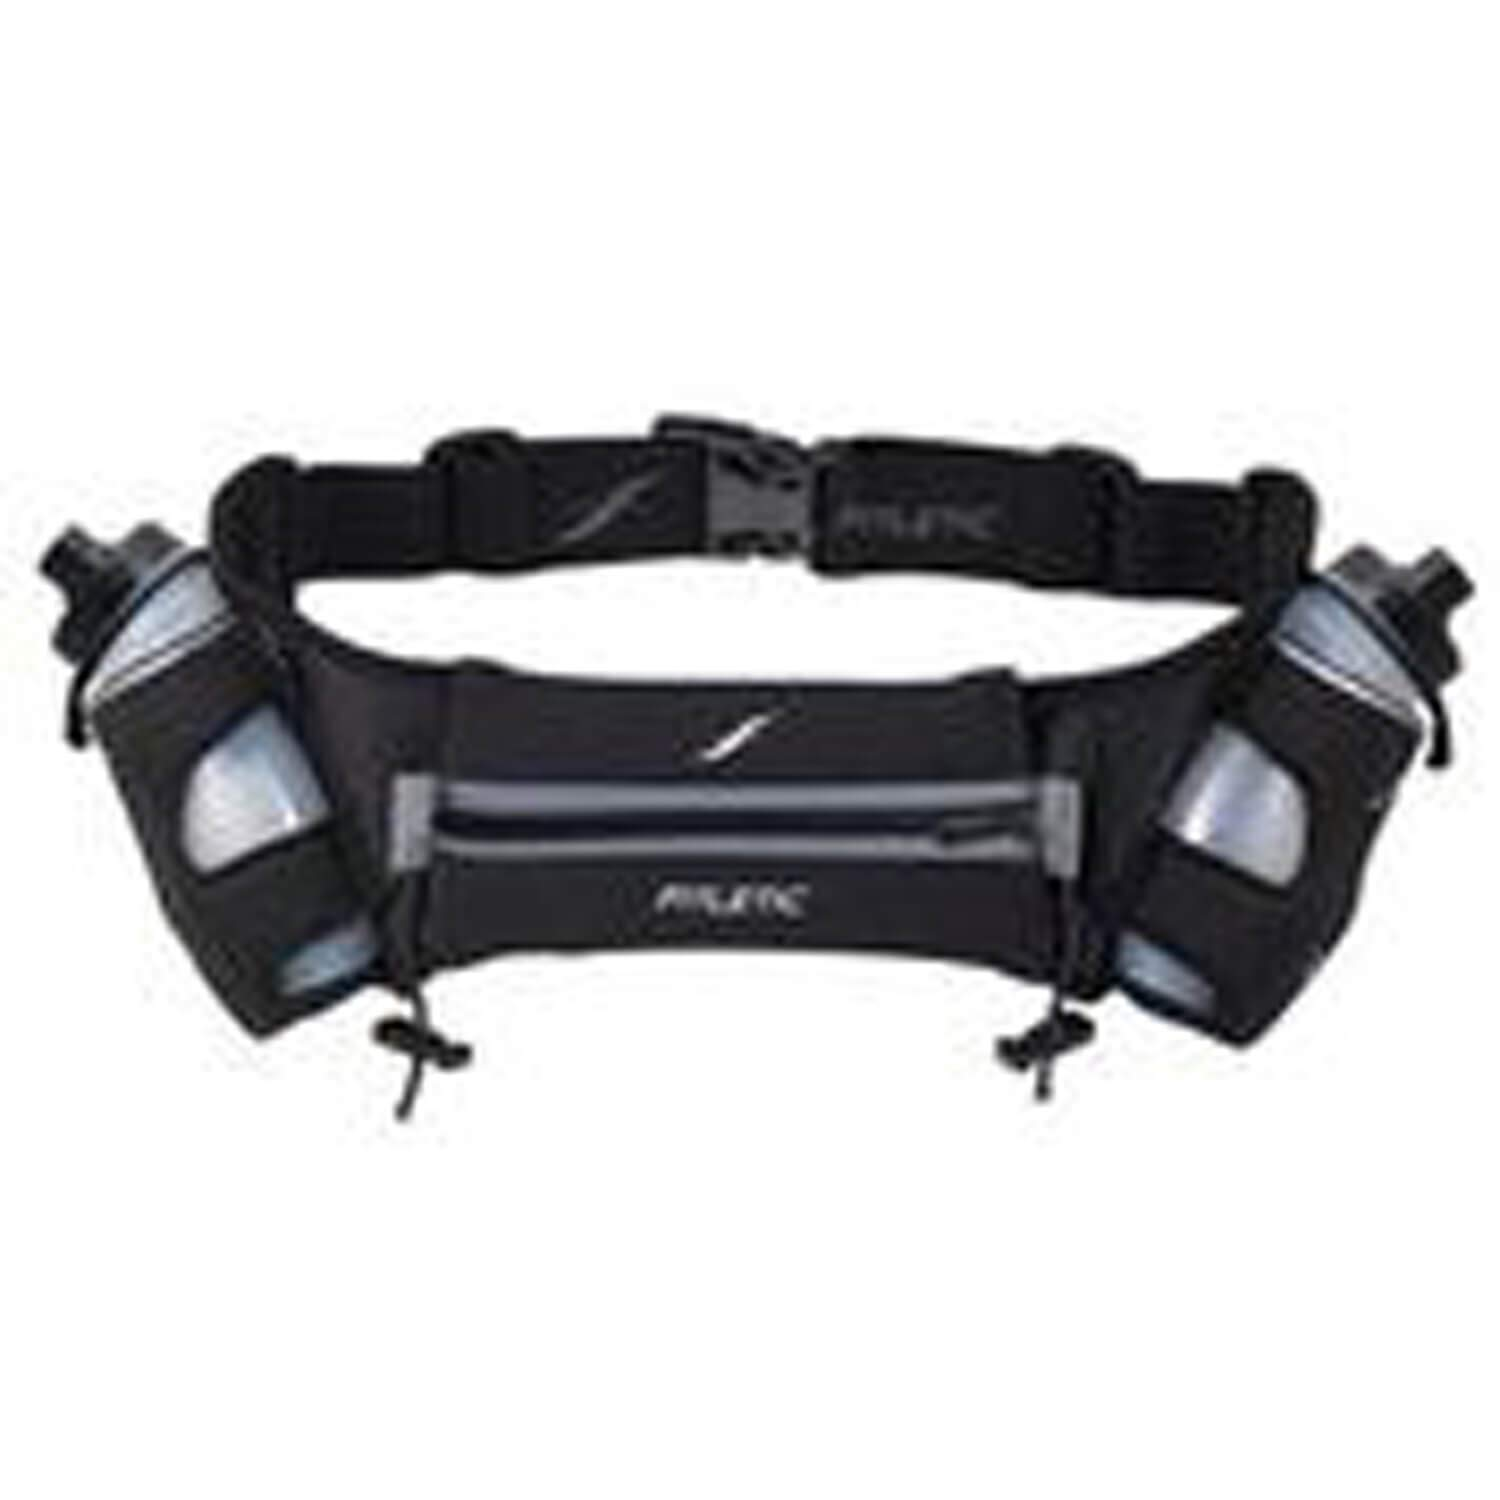 Fitletic  12 Oz Hydration Belt, Black/Gray, Large/X-Large